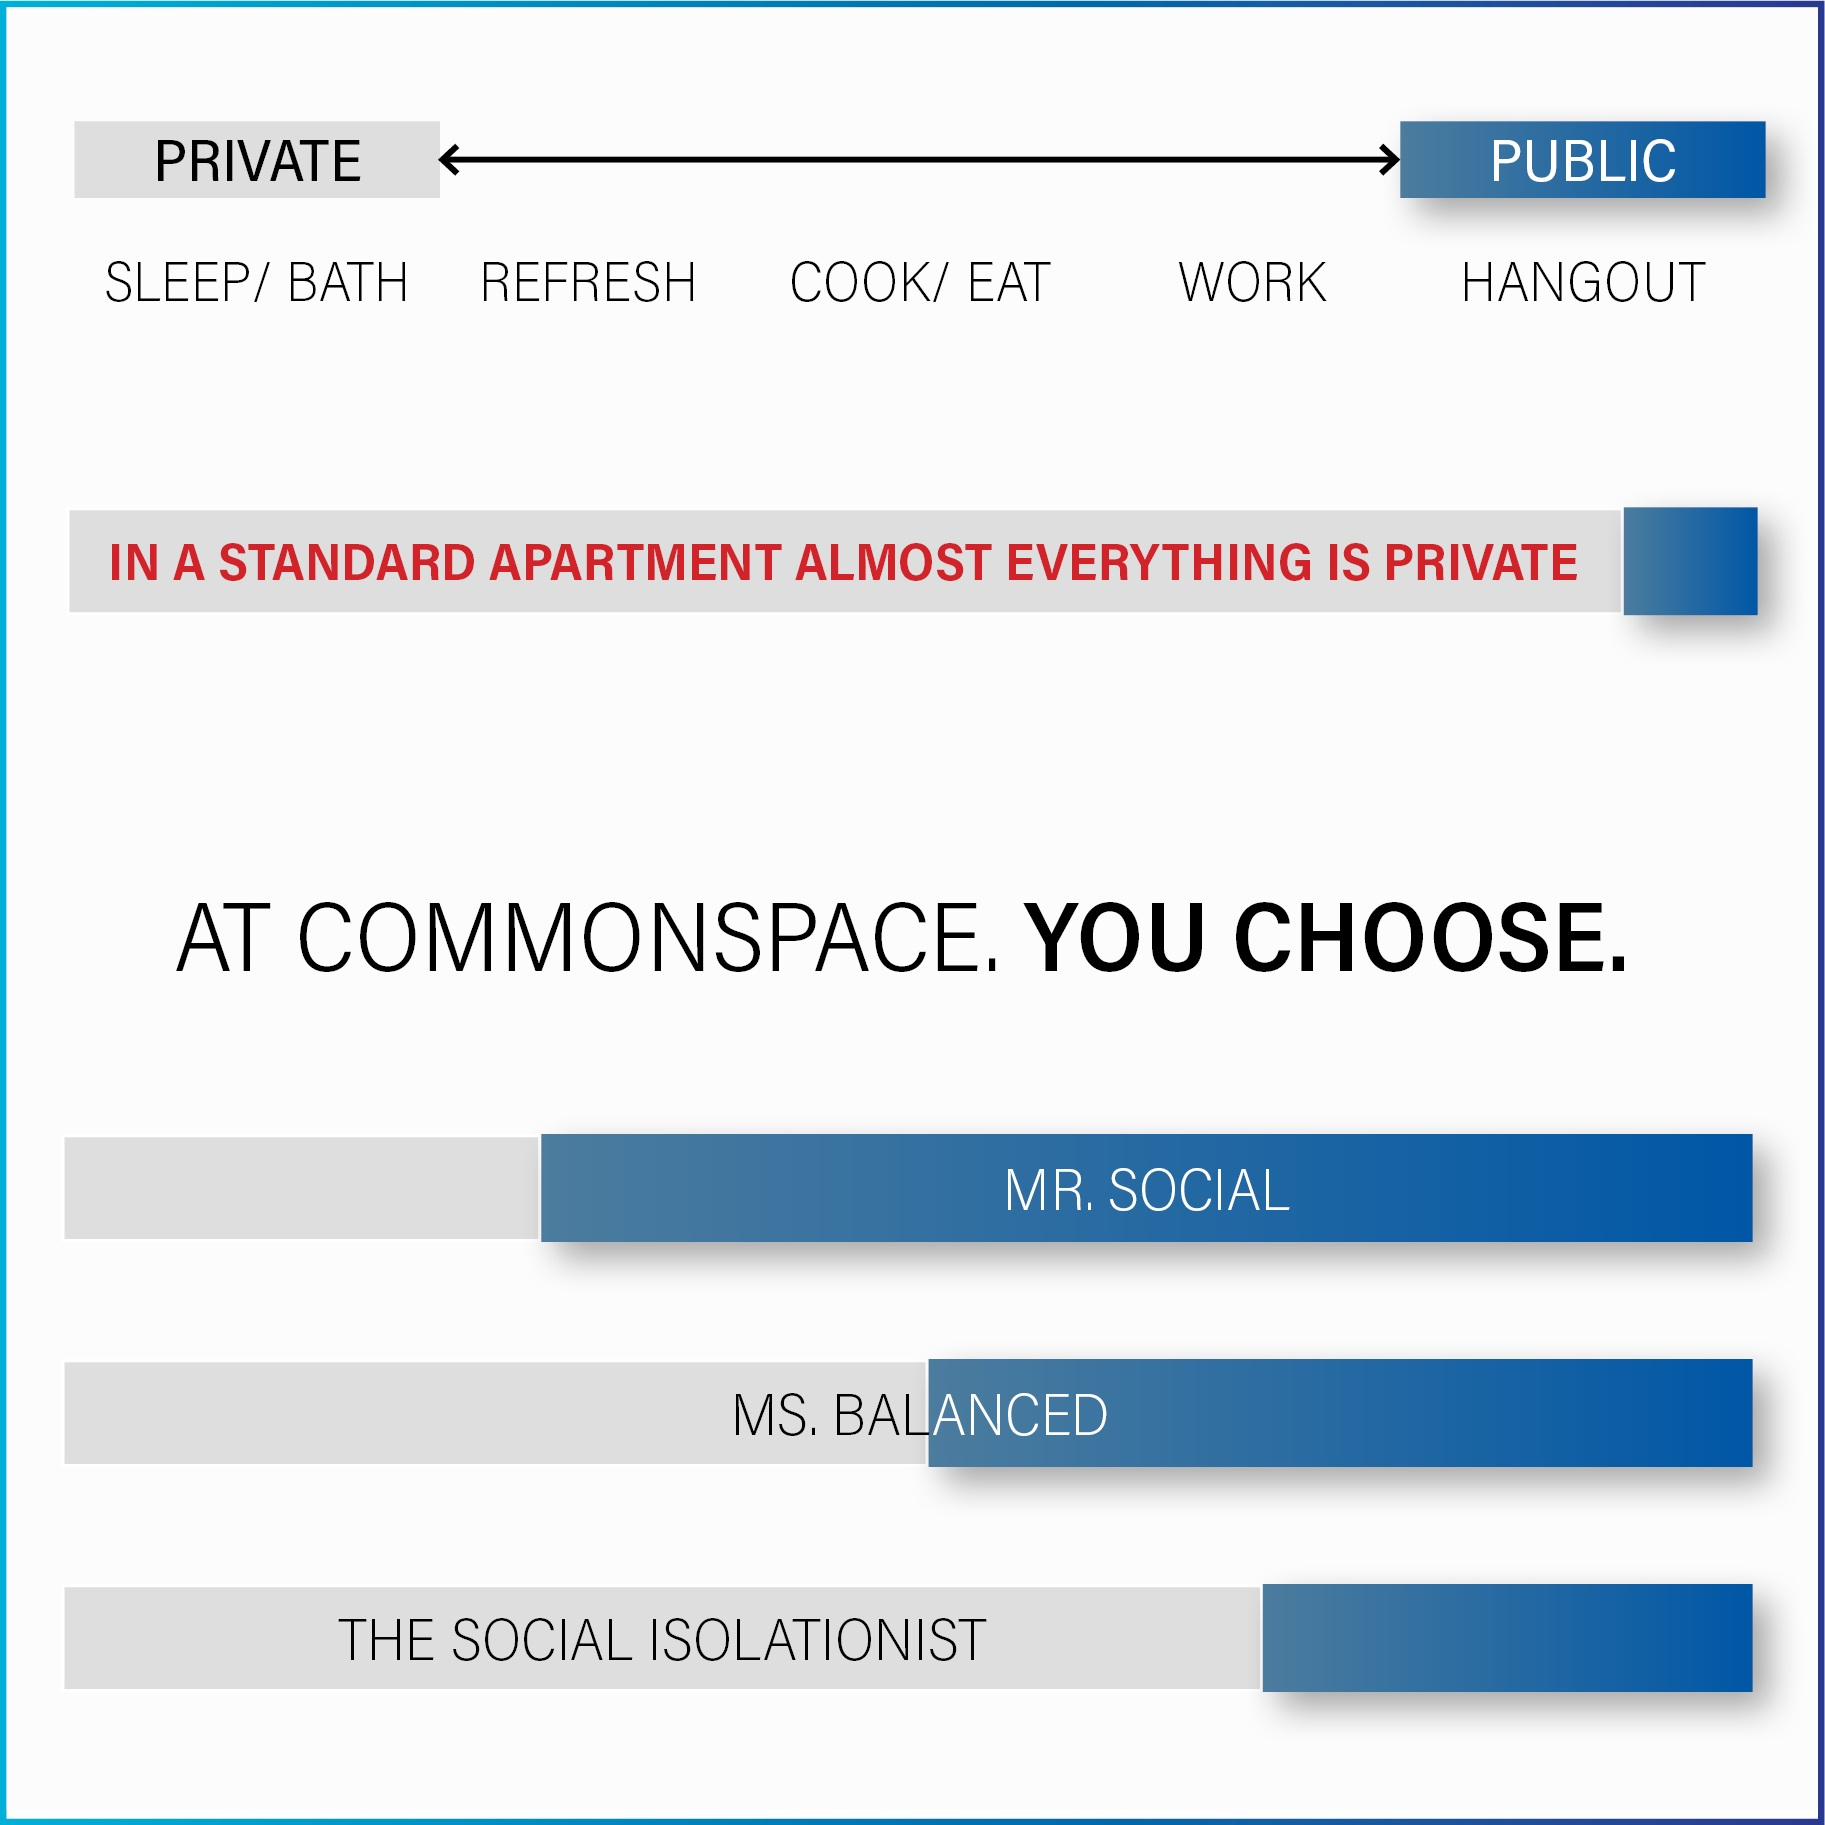 COMMUNITY, WHEN YOU WANT IT. - AT COMMONSPACE WE ENCOURAGE CUSTOMIZED LIVING TO SUIT YOUR PERSONALITY AND YOUR MOOD. Feeling social, come hang out. not feeling it, you have everything you need in your unit.So, THE CHOICE IS YOURS- EVERYDAY.